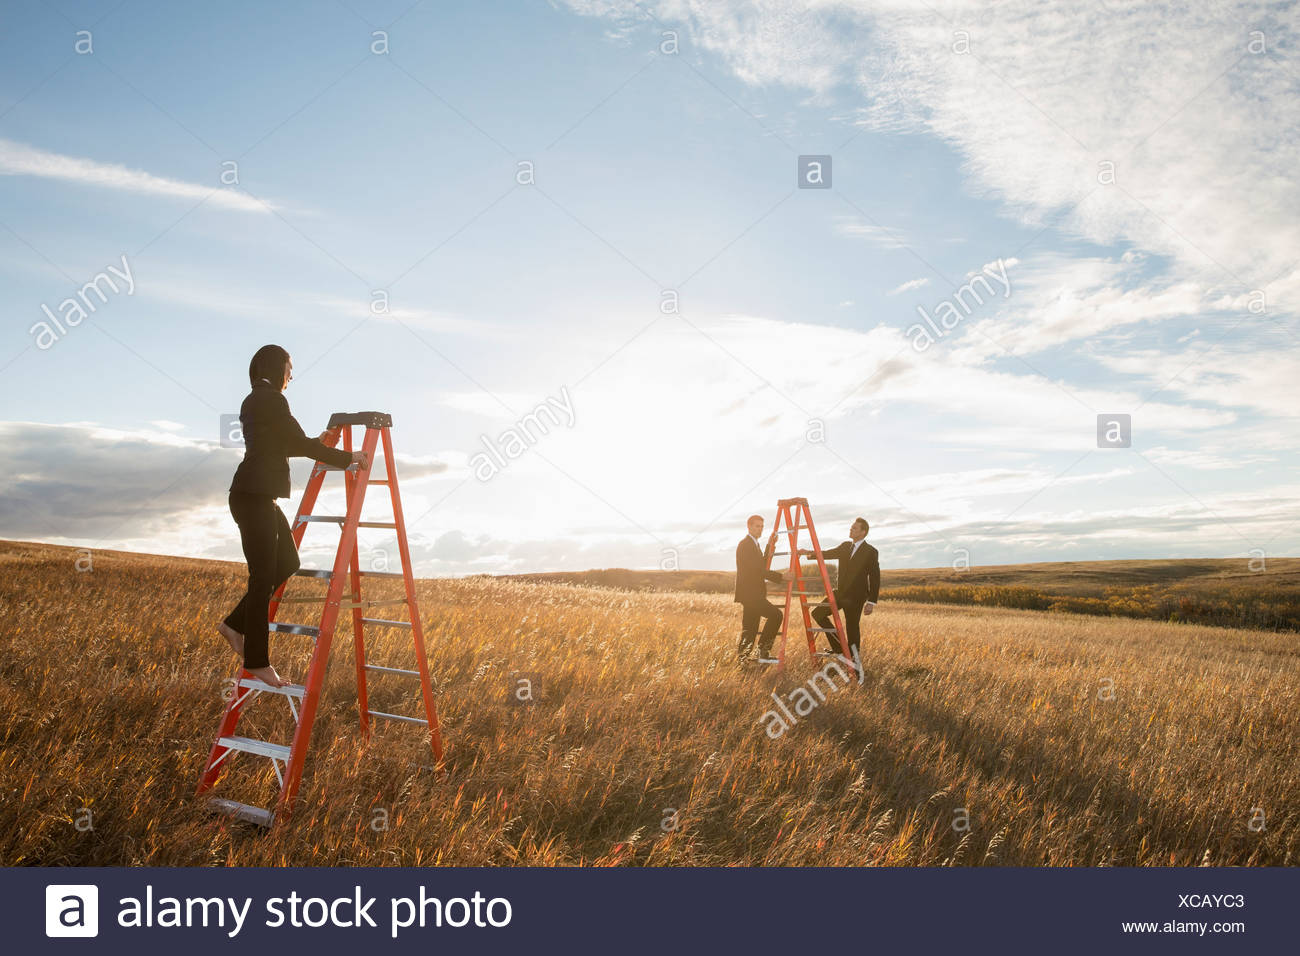 Confident business people climbing ladders on field - Stock Image